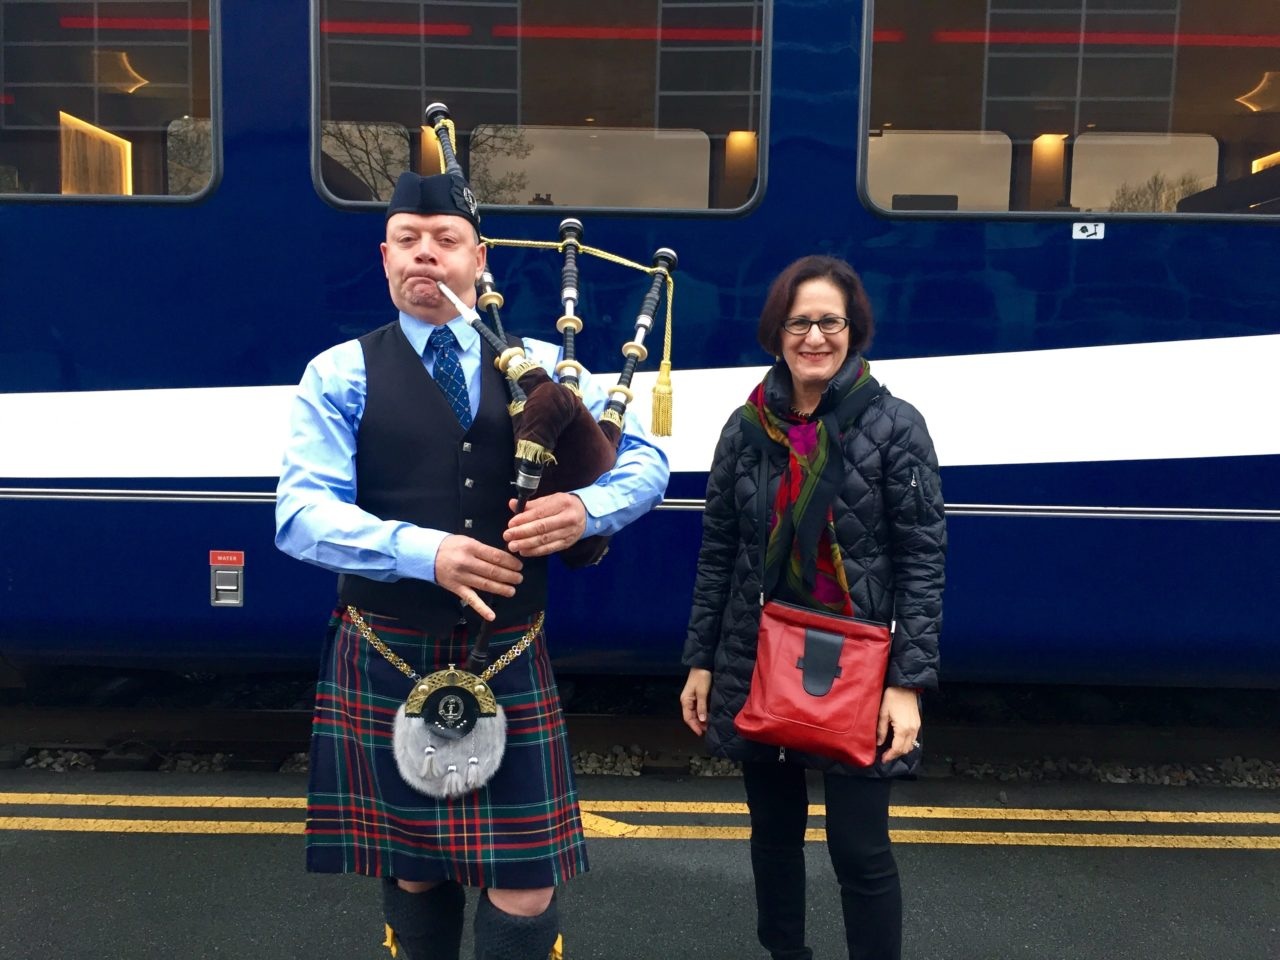 At Vancouver's Rocky Mountaineer train station, a bagpipe send off for our Trip of a Lifetime ...